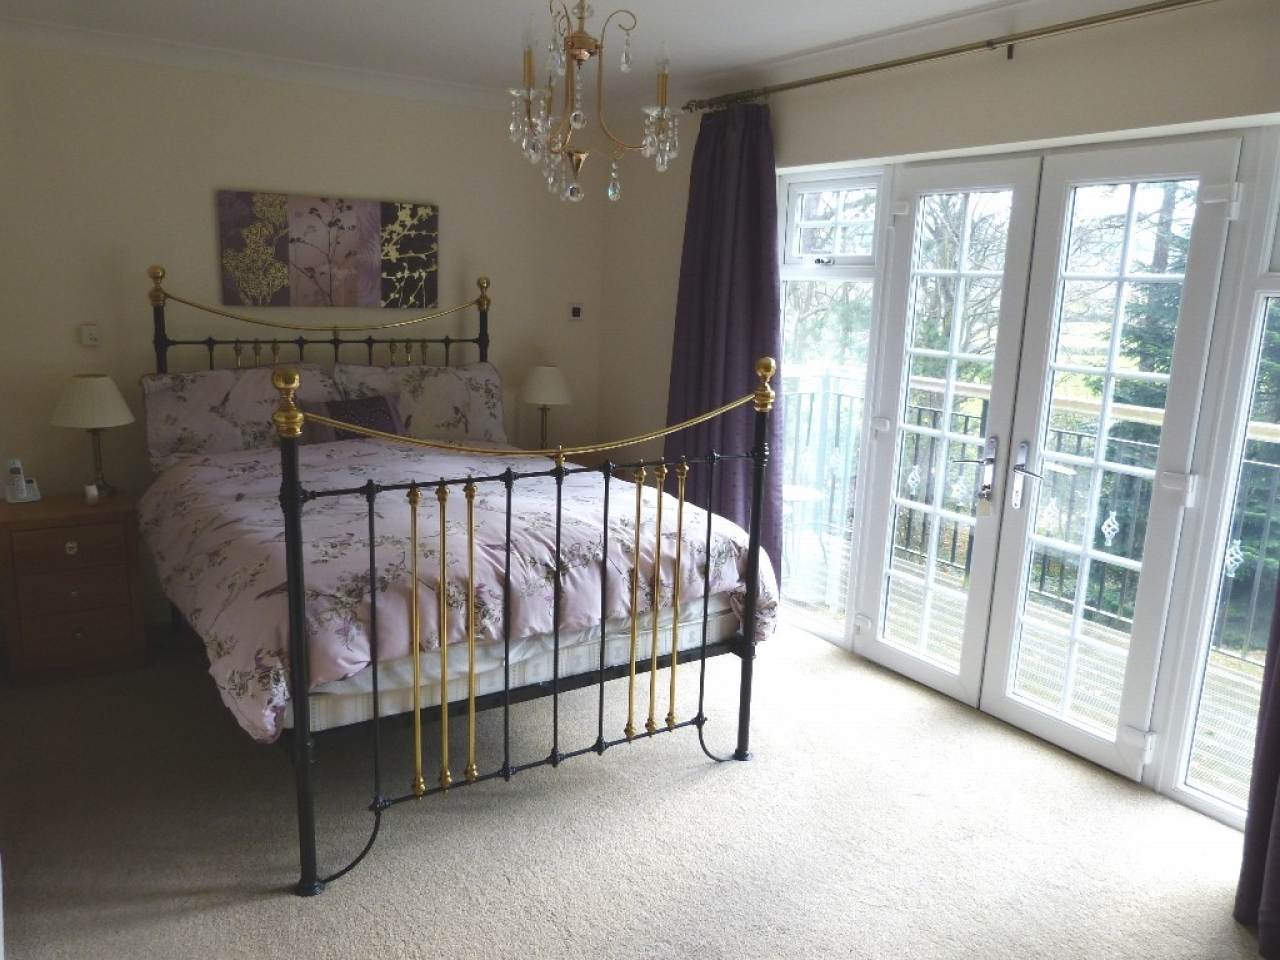 5 bedroom detached house SSTC in Abergele - Photograph 11